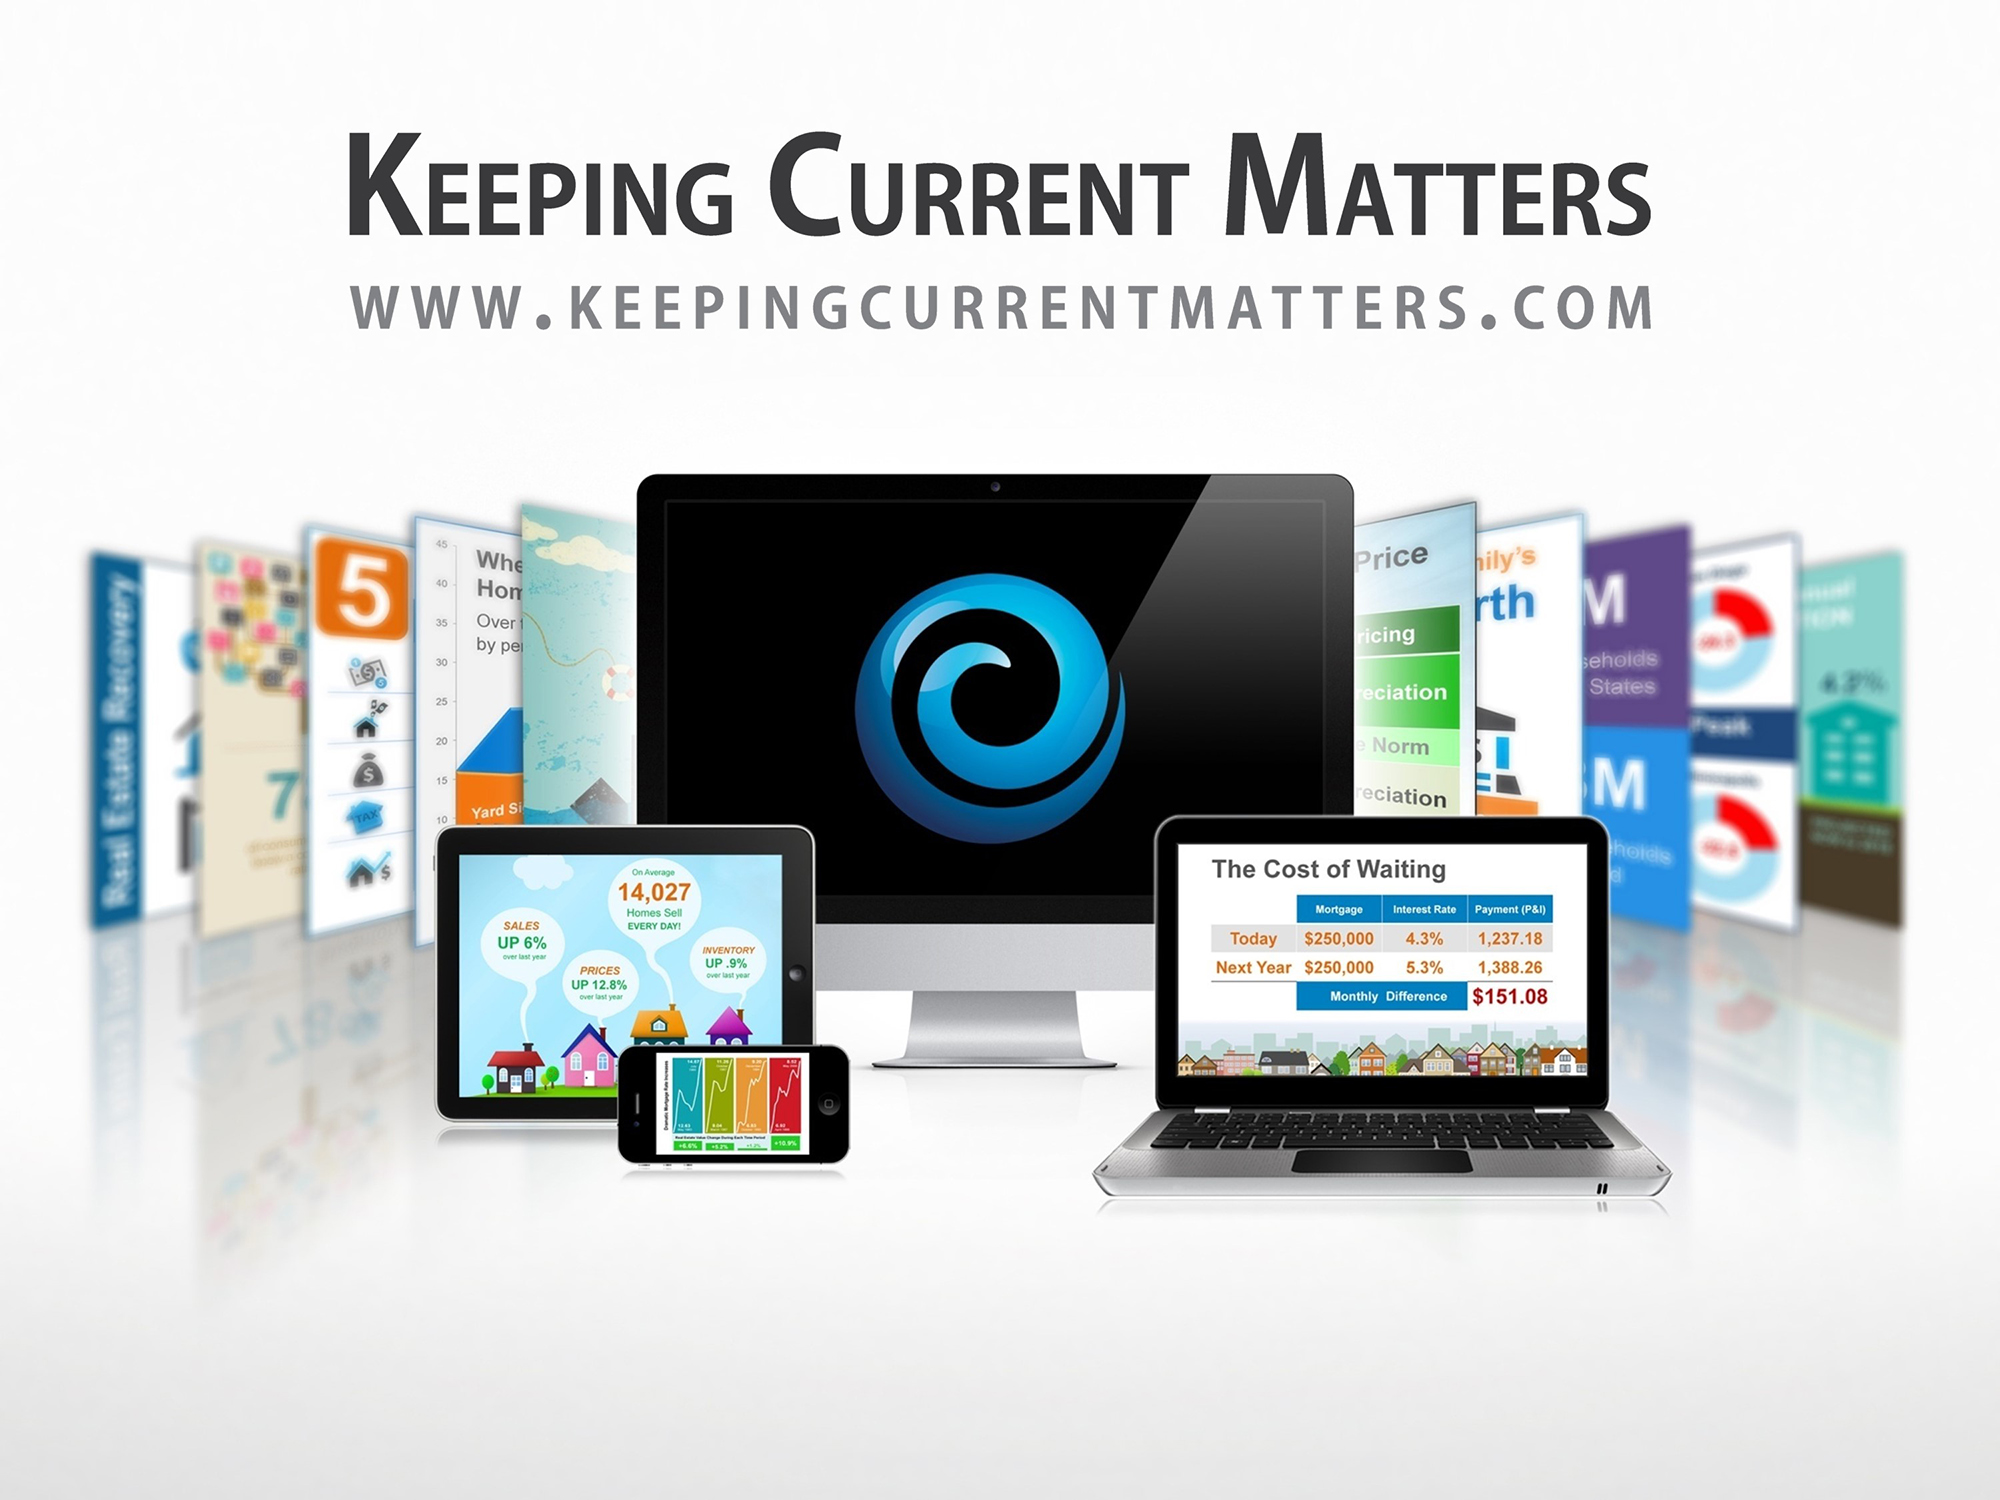 Keeping Current Matters